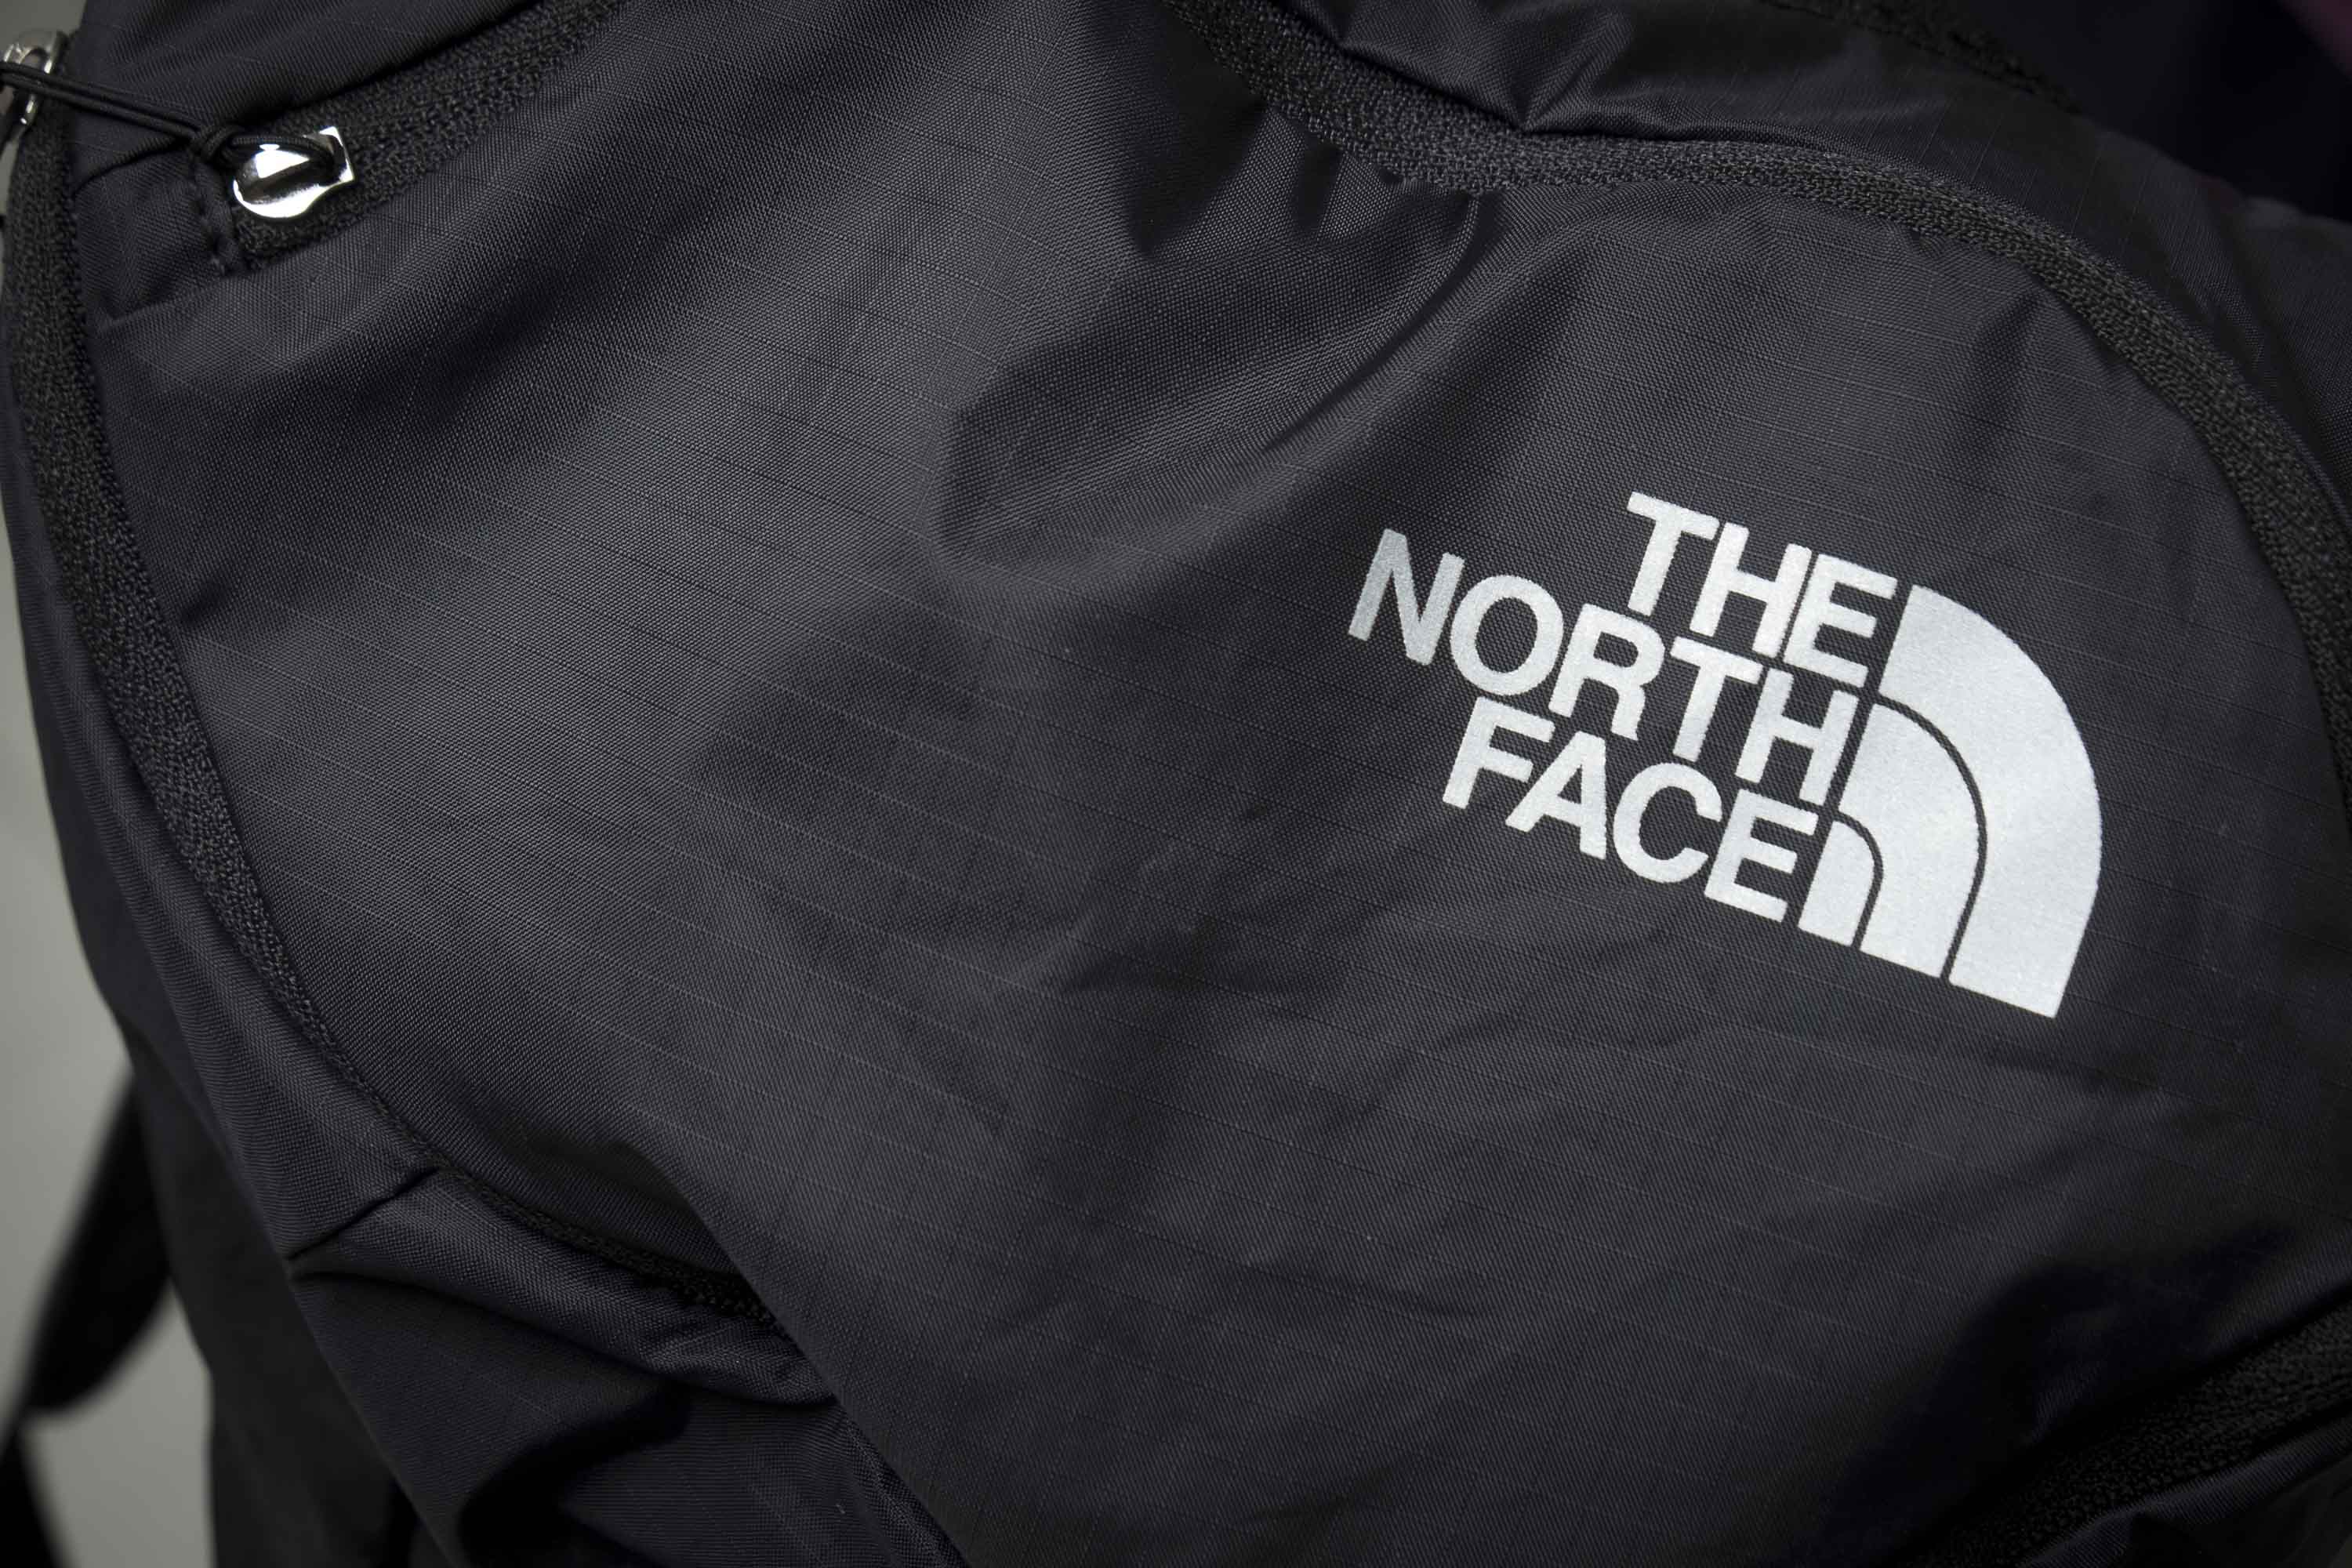 49e01b10a The North Face Product Review part 2 - Running Apparel